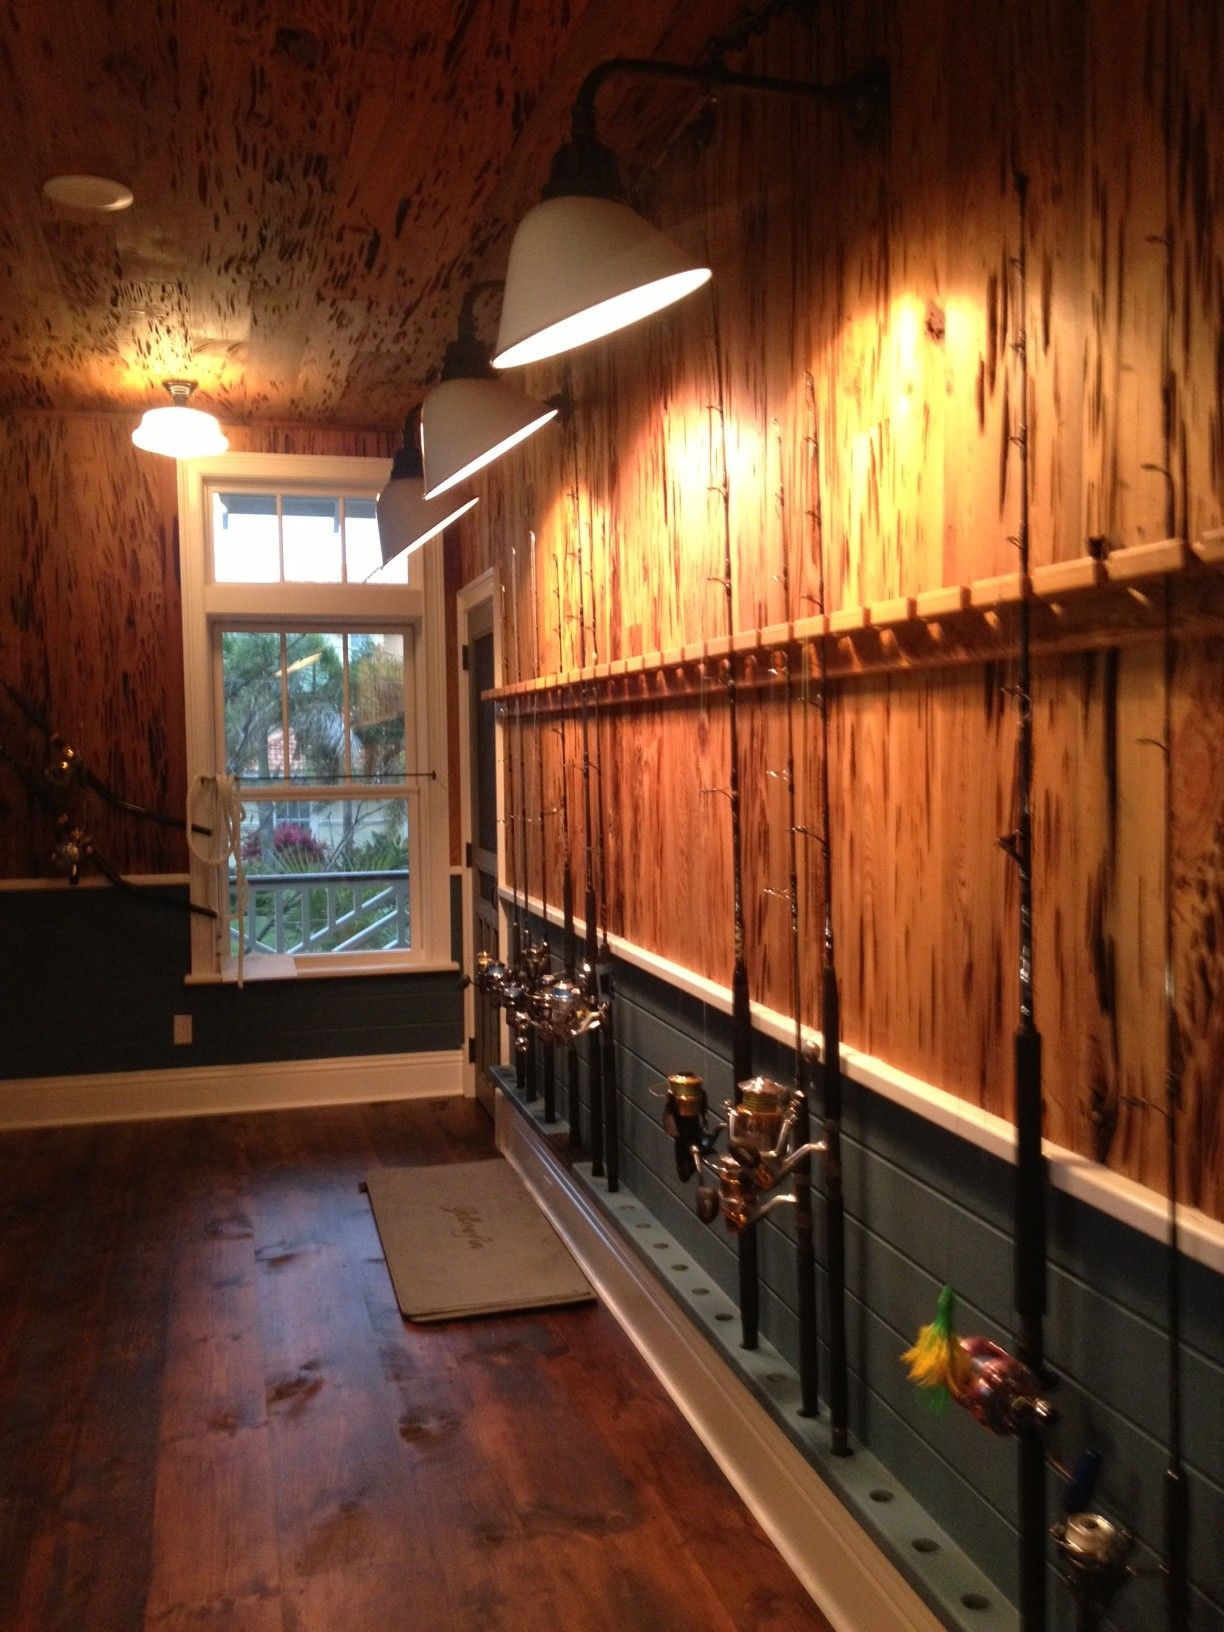 That S Some Sweet Way To Store Fishing Rods Fishing In